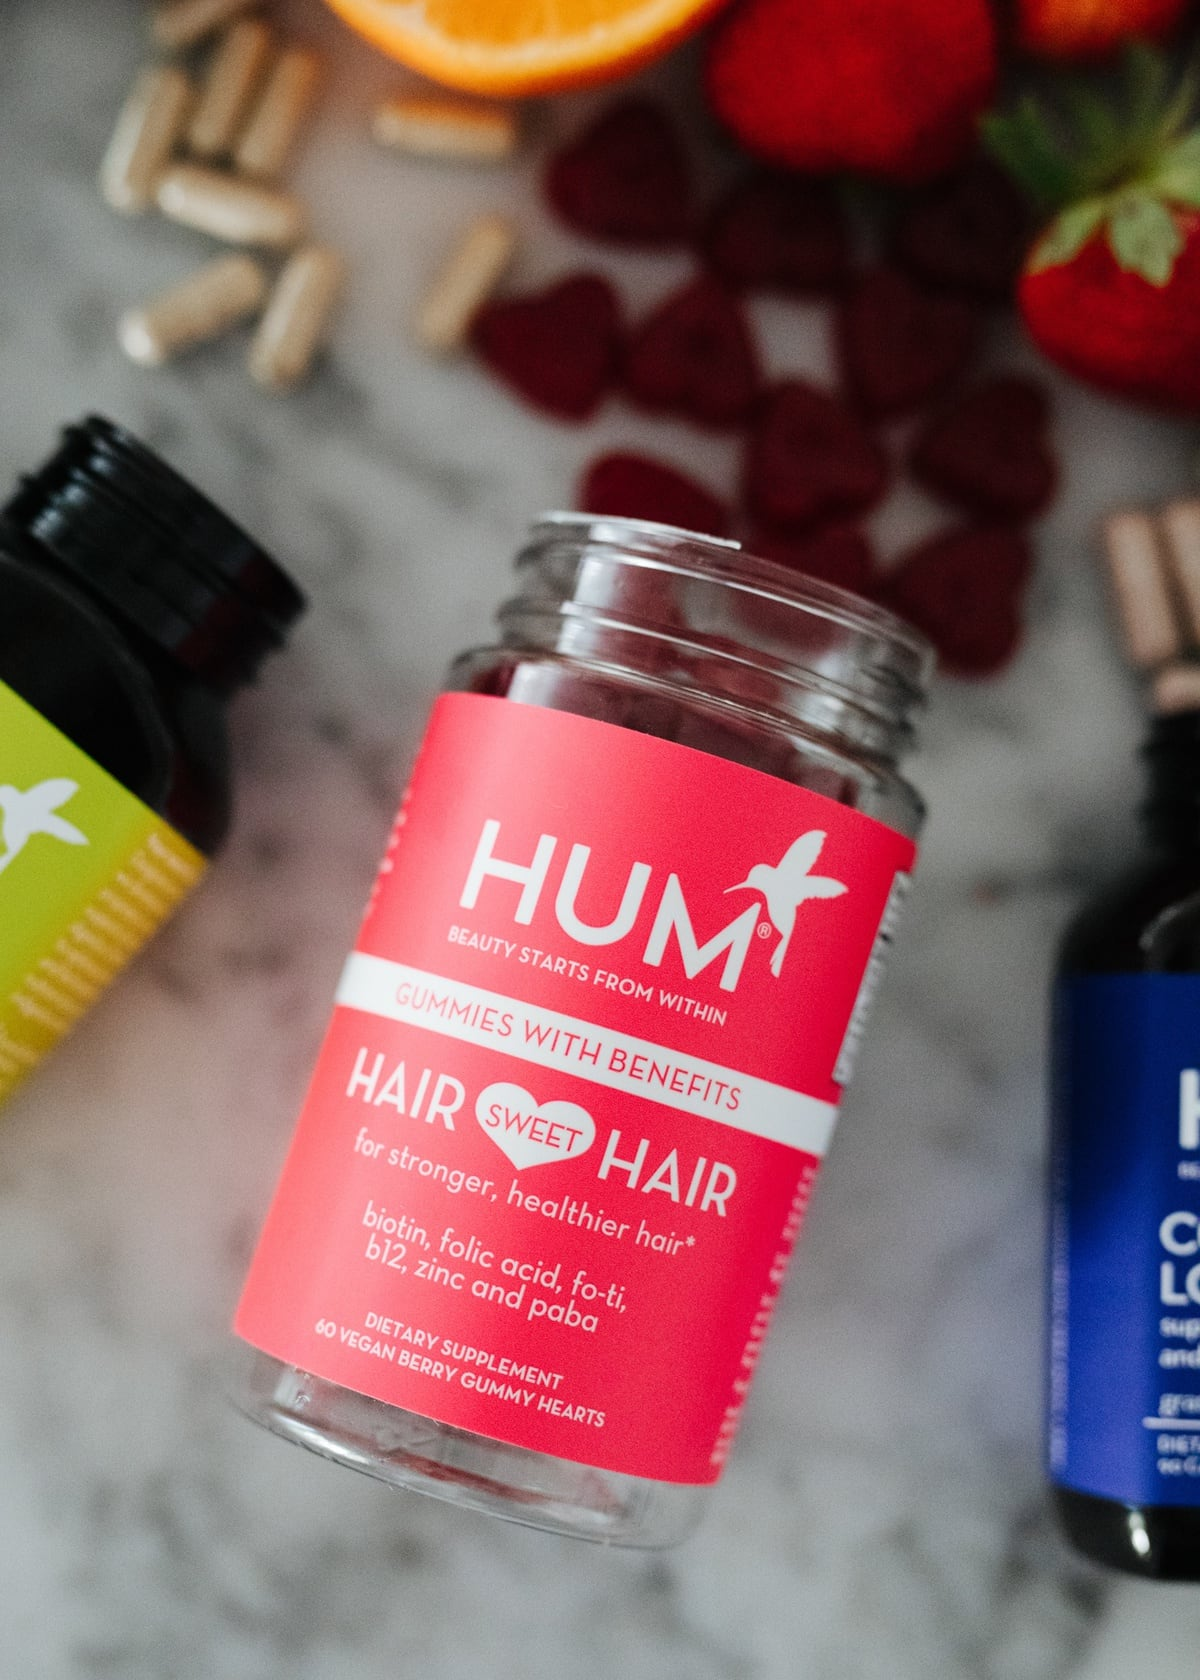 hair growing supplements